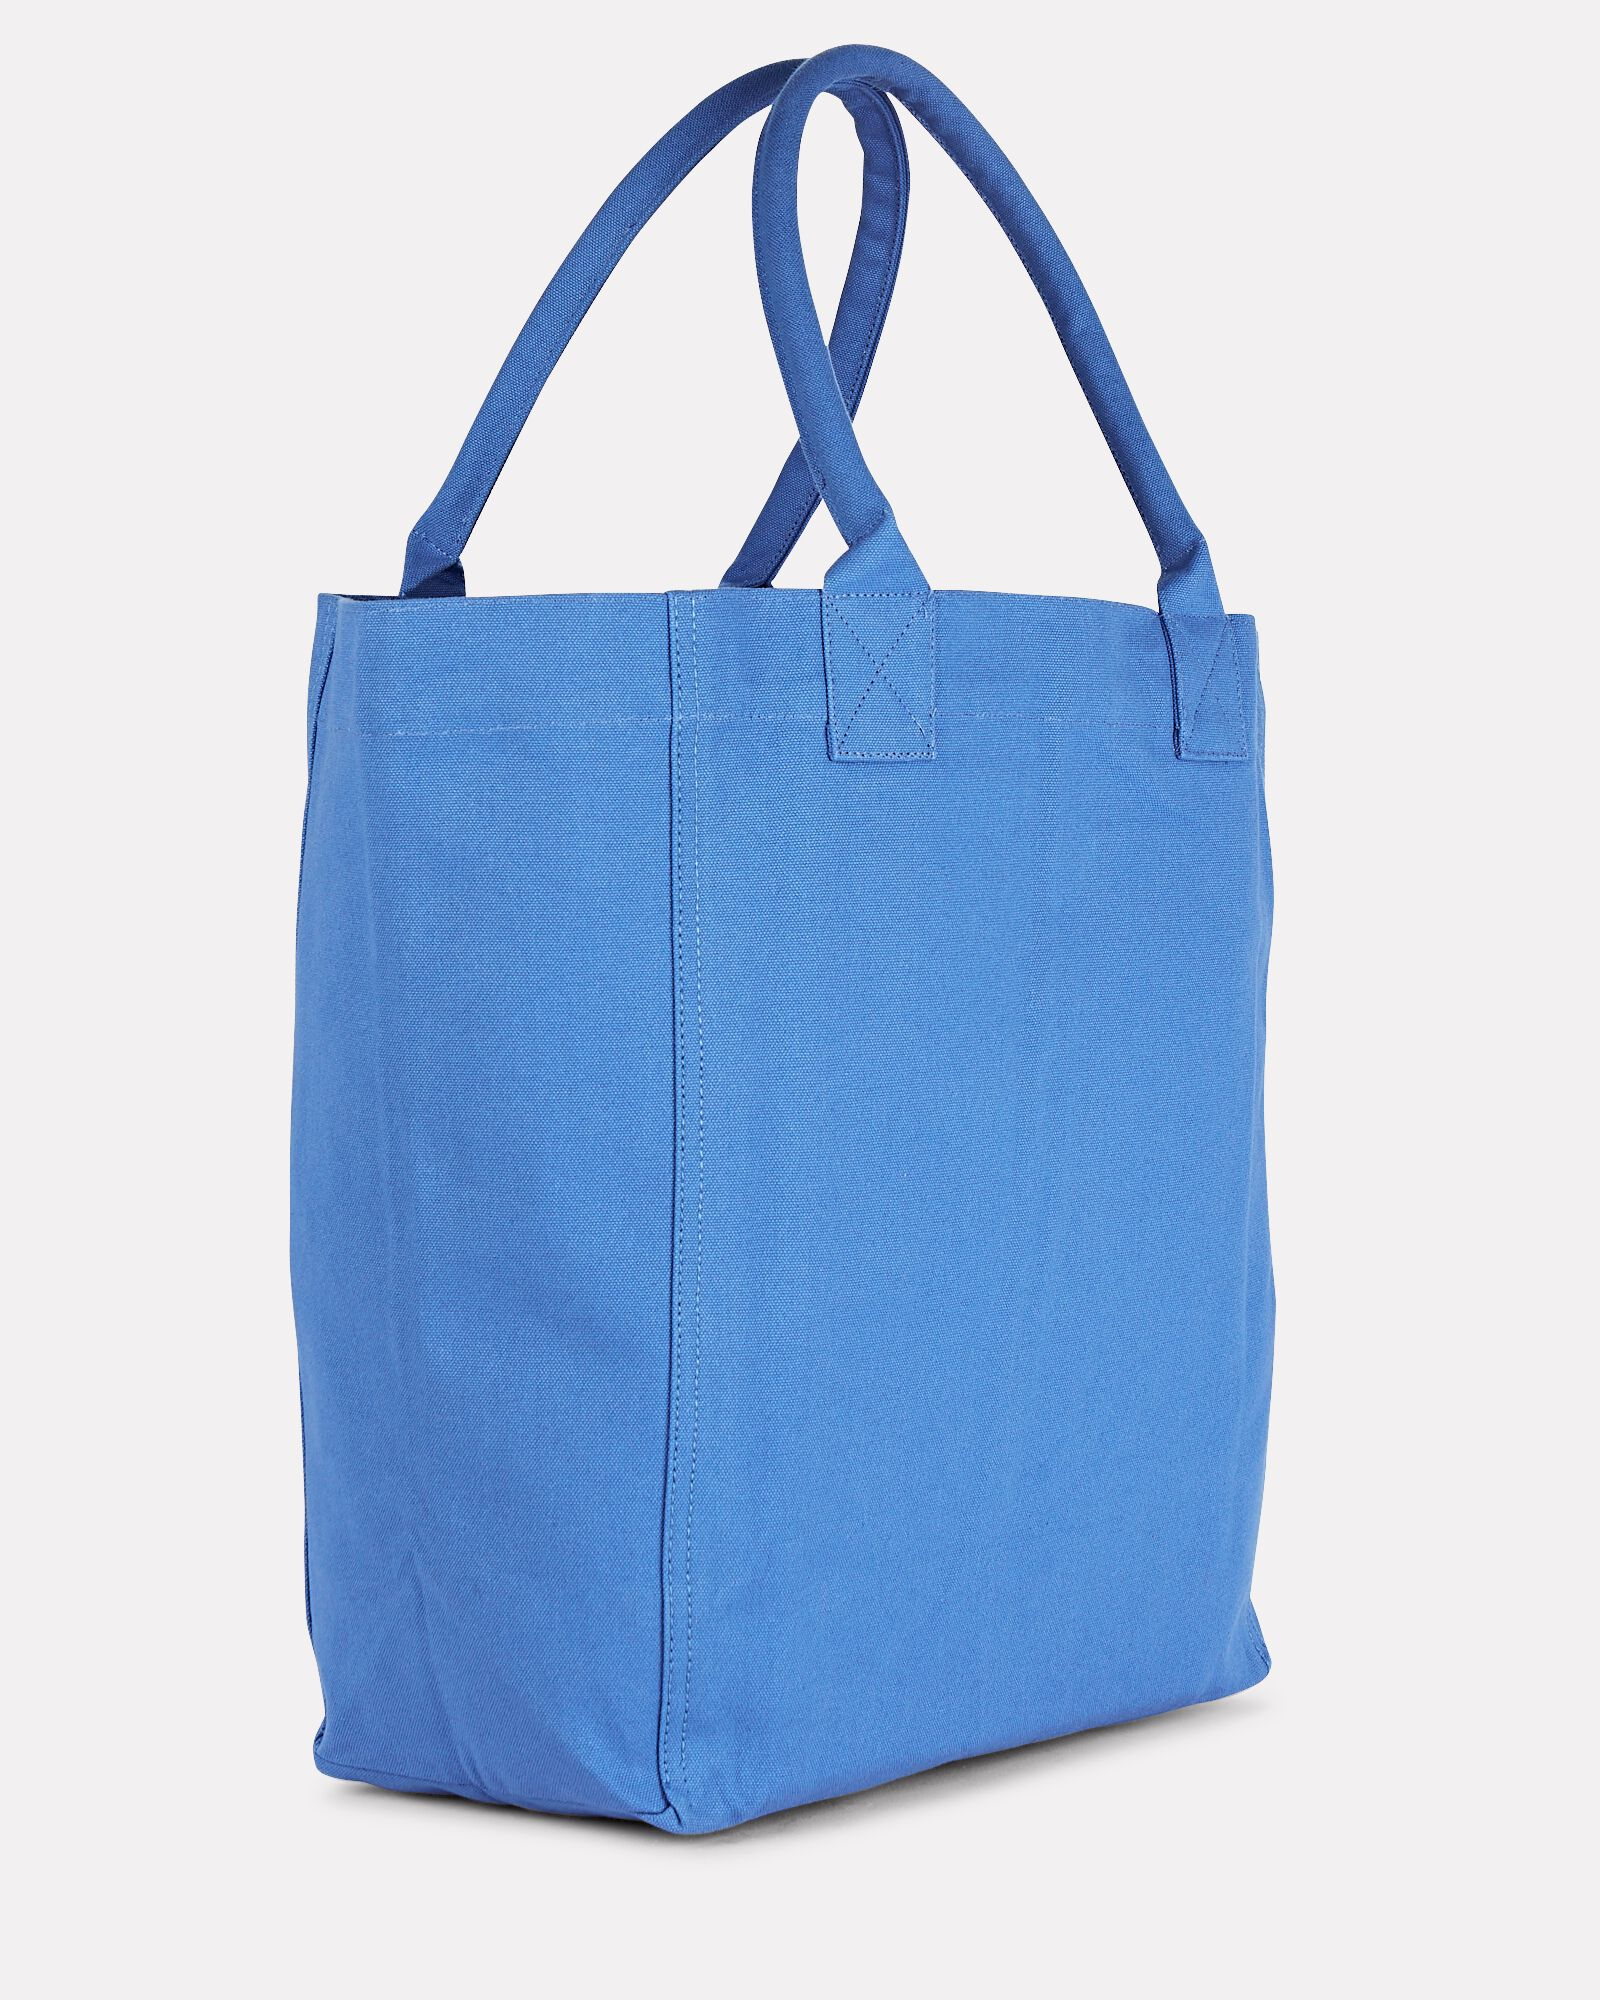 Yenky Logo Canvas Tote Bag, BLUE, hi-res